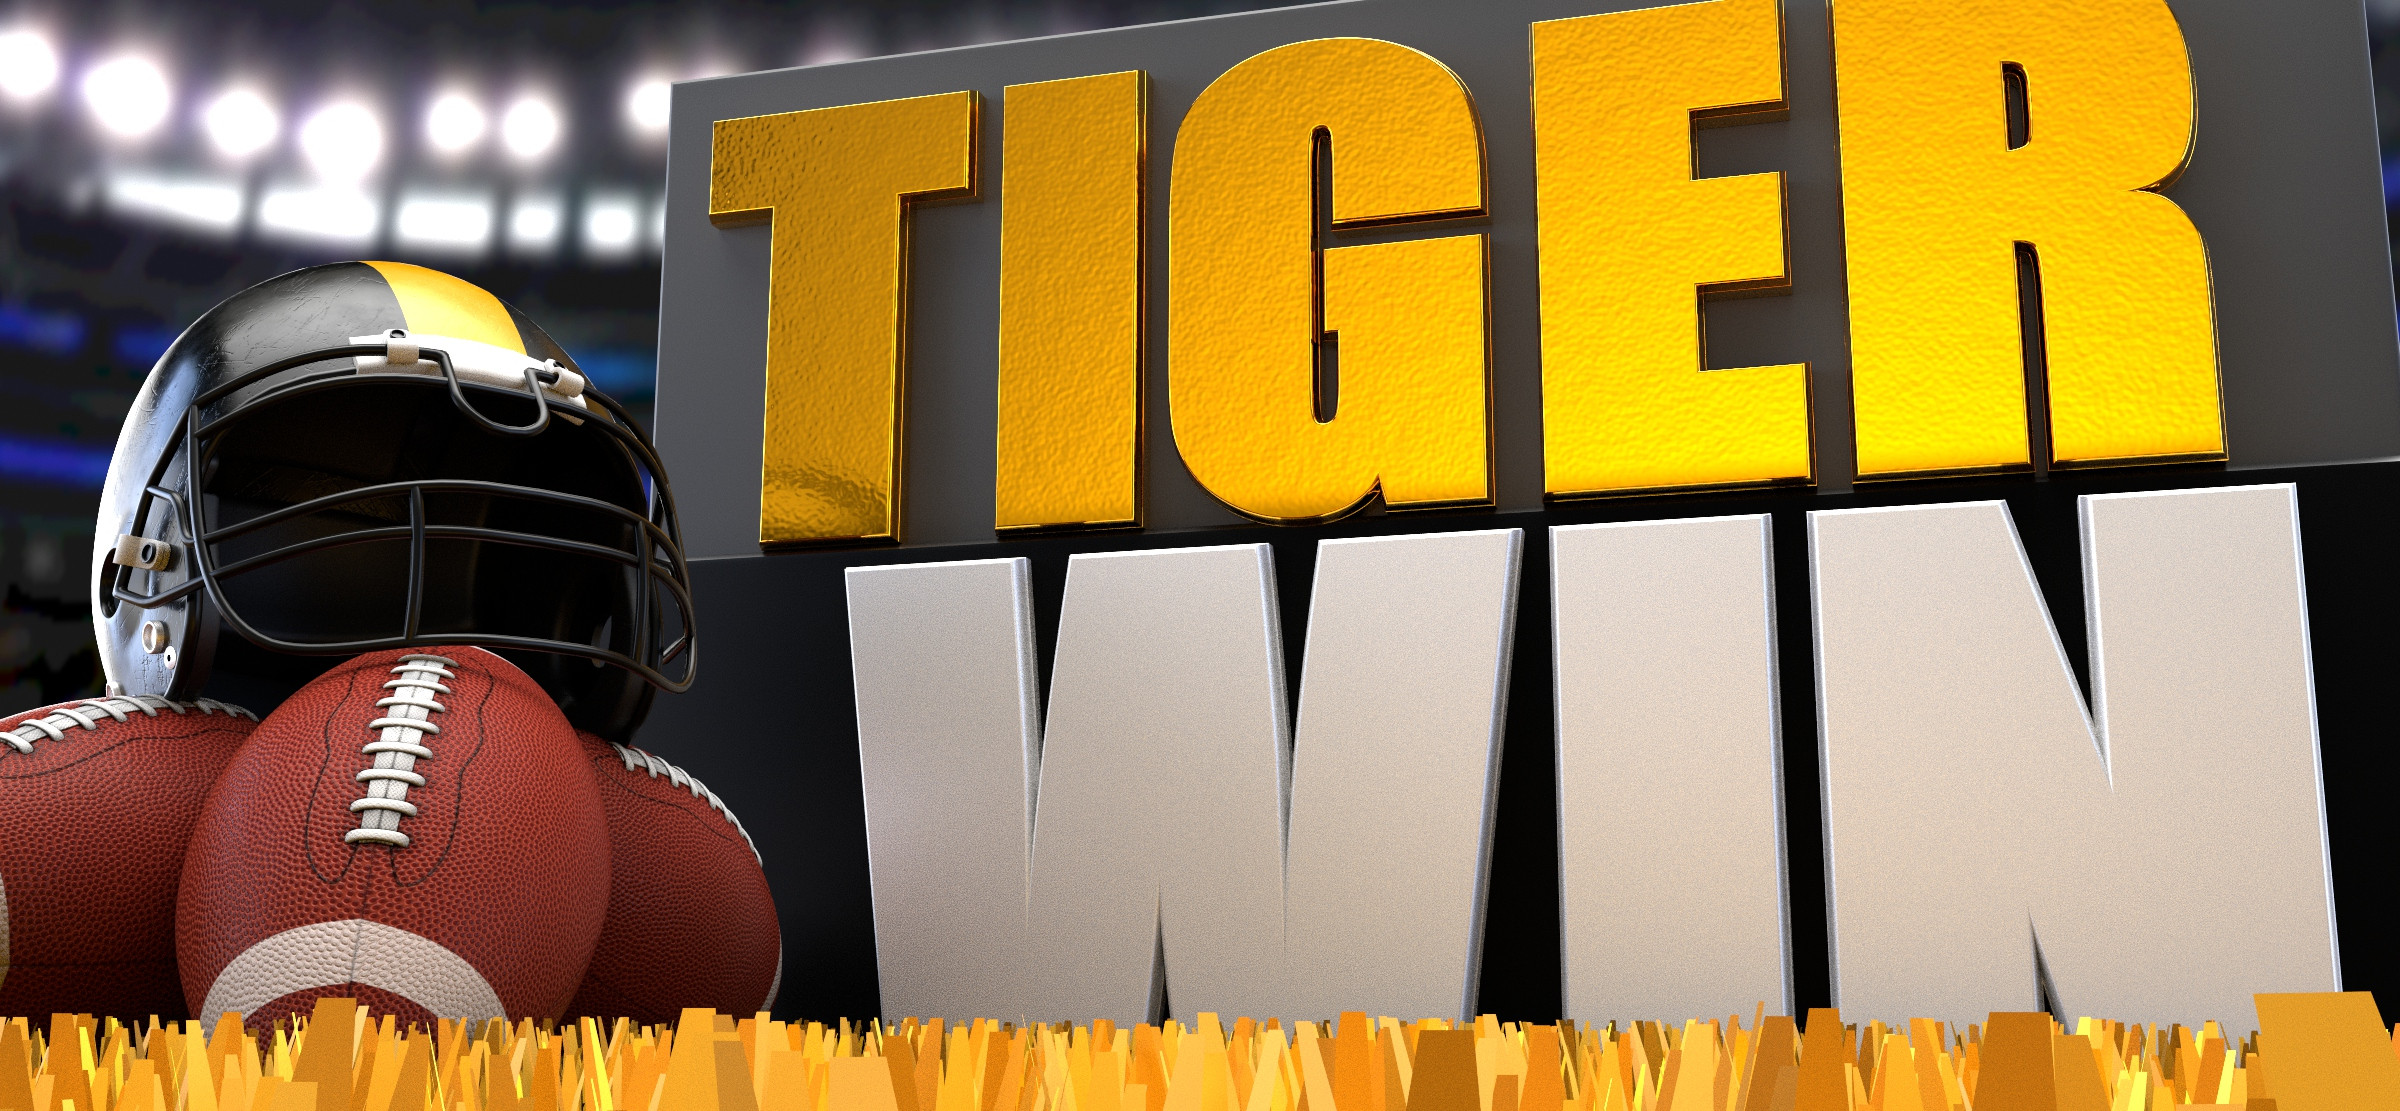 Tiger Win first test